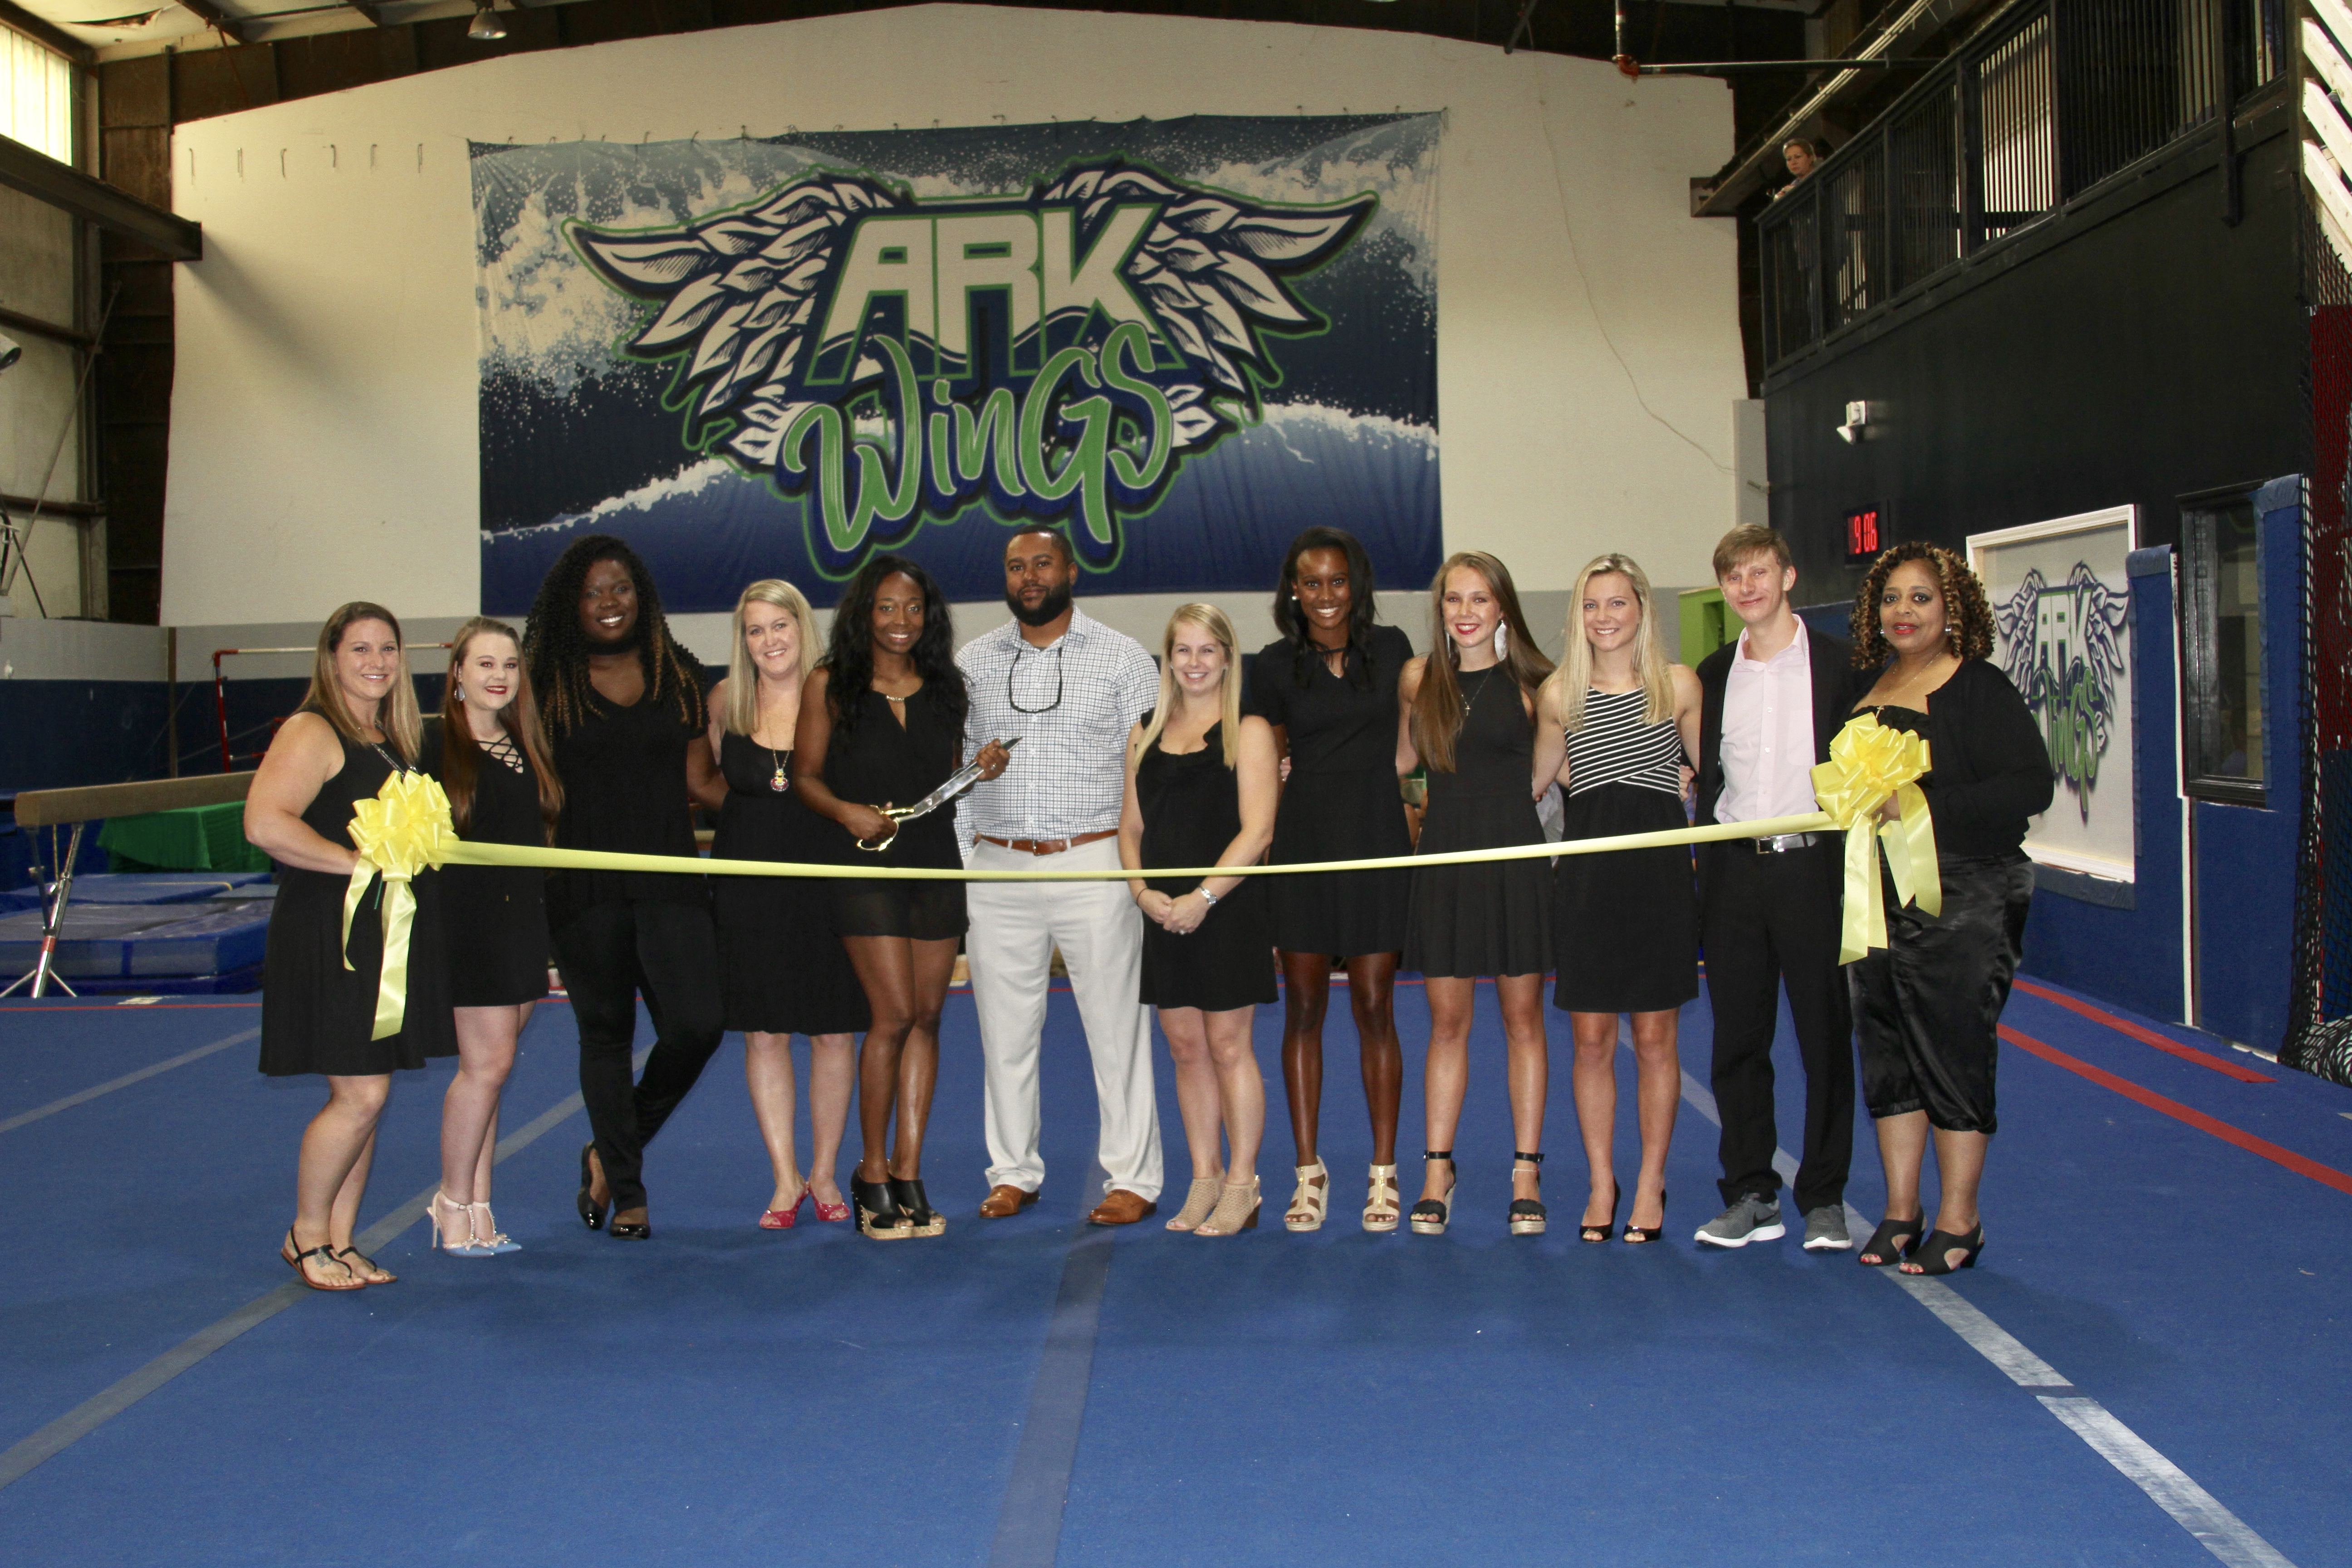 Ribbon cutting held for new ARK WinGS Gym in Trussville